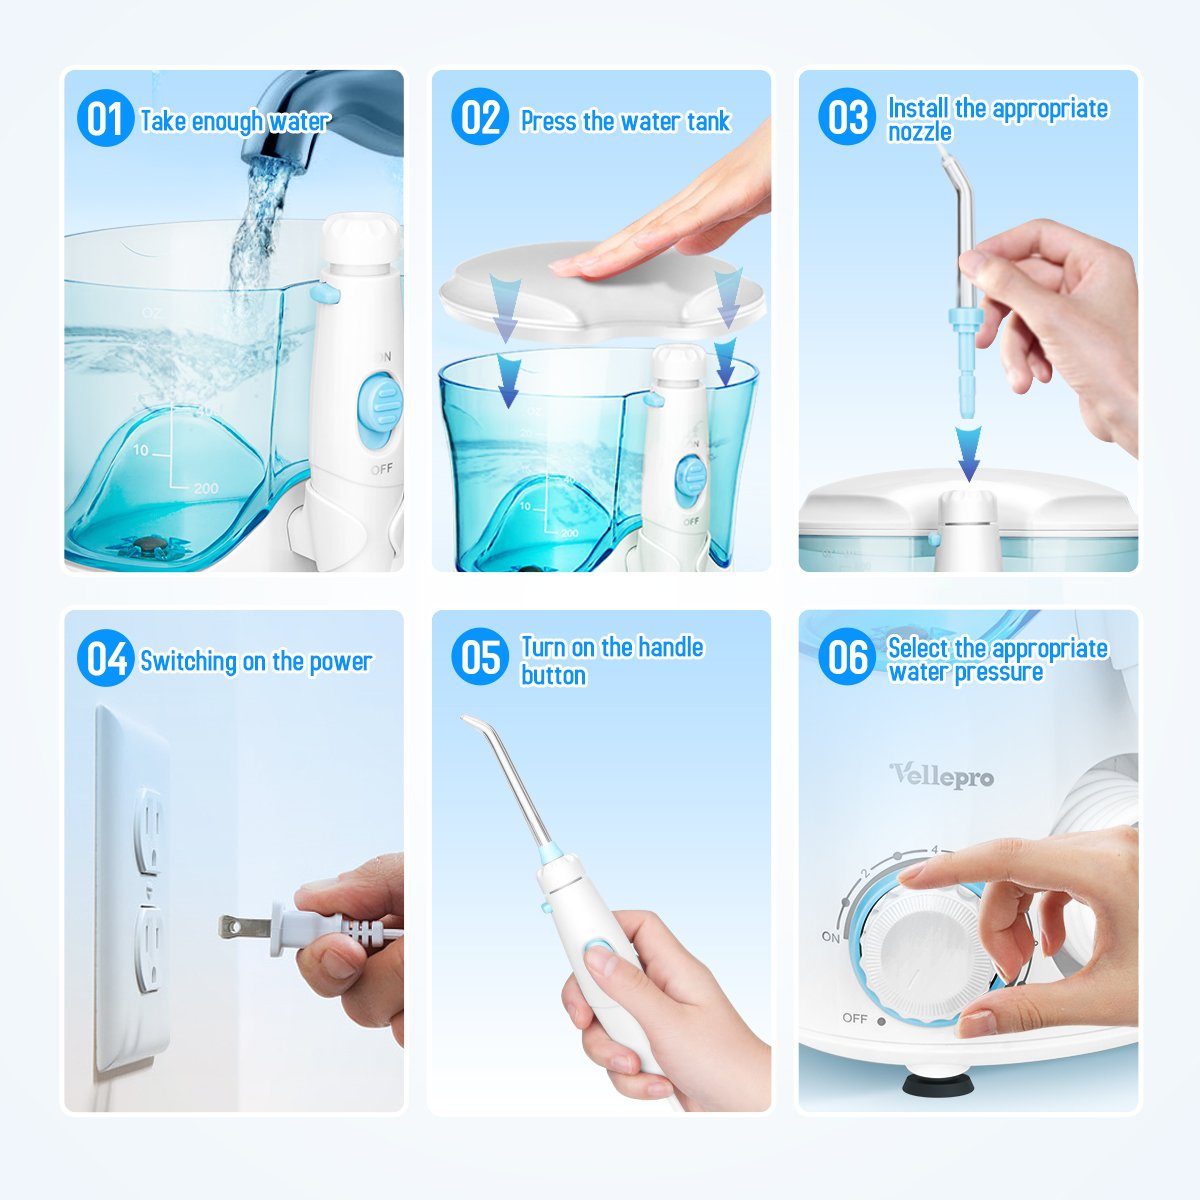 Vellepro Classic Pearly White Cordless Advanced Water Flosser for Teeth & Braces, Oral Care Irrigator with 8 Interchangeable Nozzles, 10 Pressure Settings, 600ml Capacity for People & Kids